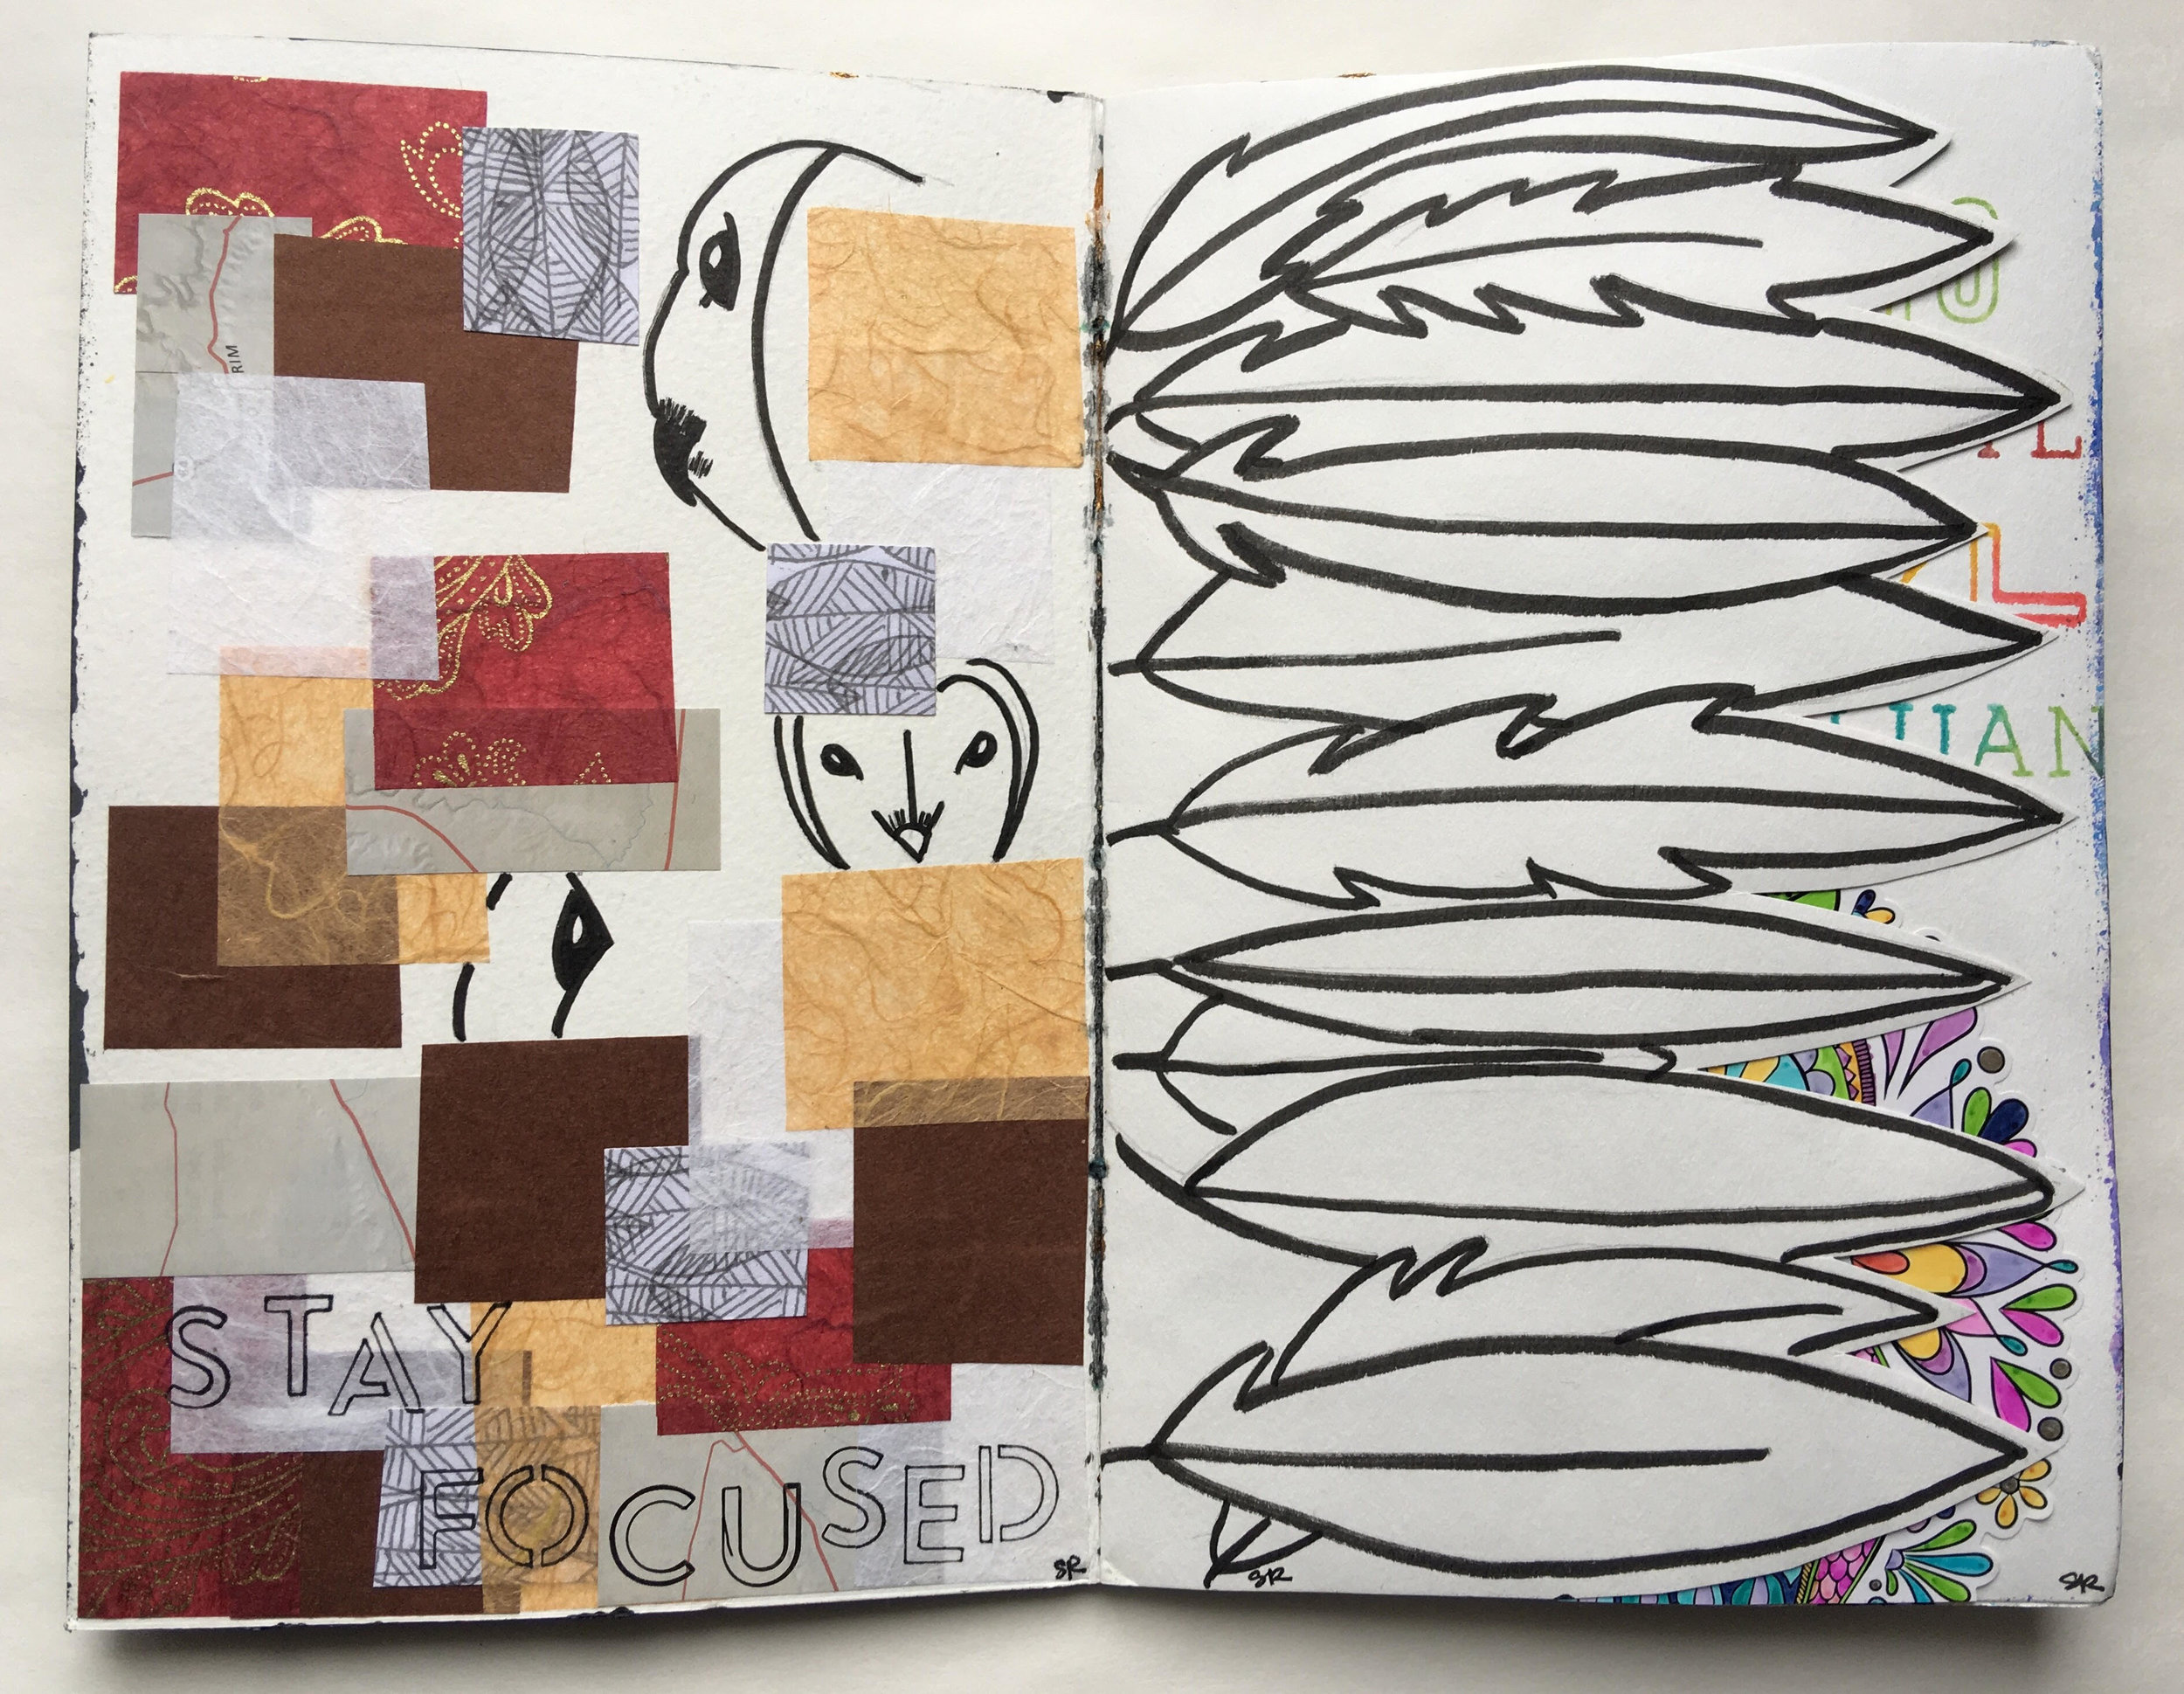 I love how Sarah was inspired by the color of owls and used paper to communicate her message. Bravo!